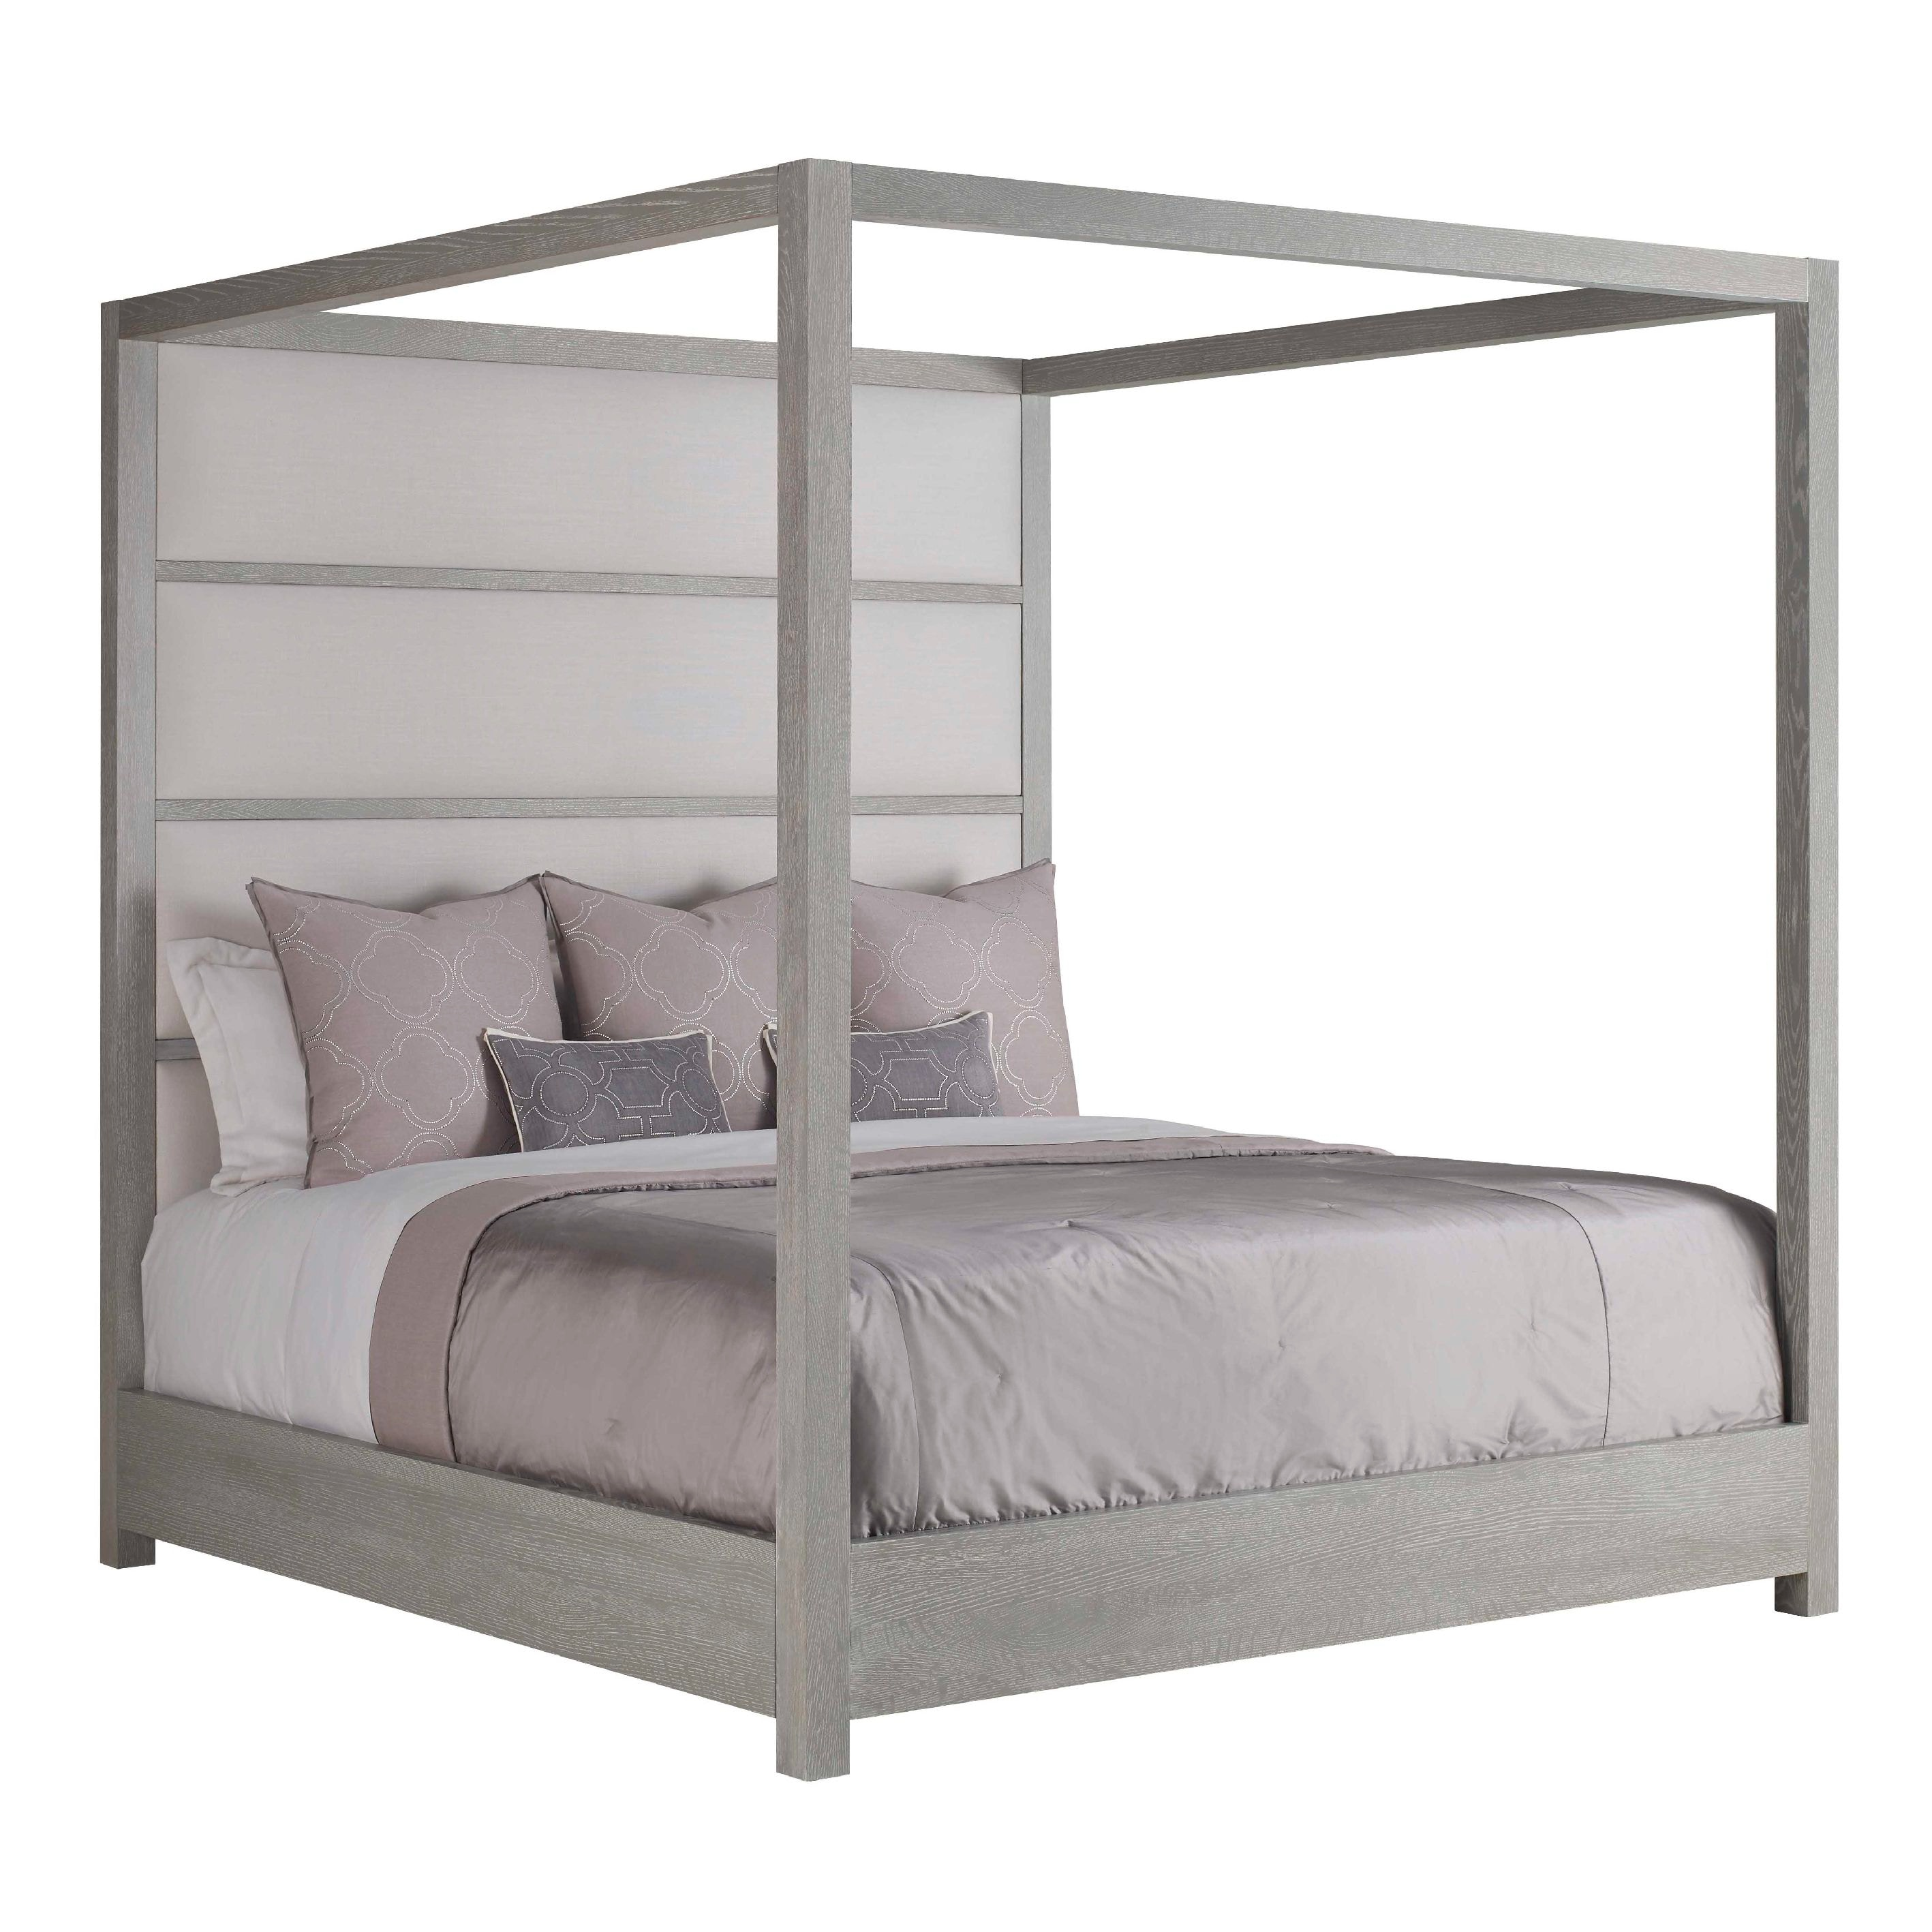 kravet howell king canopy bed fs974k